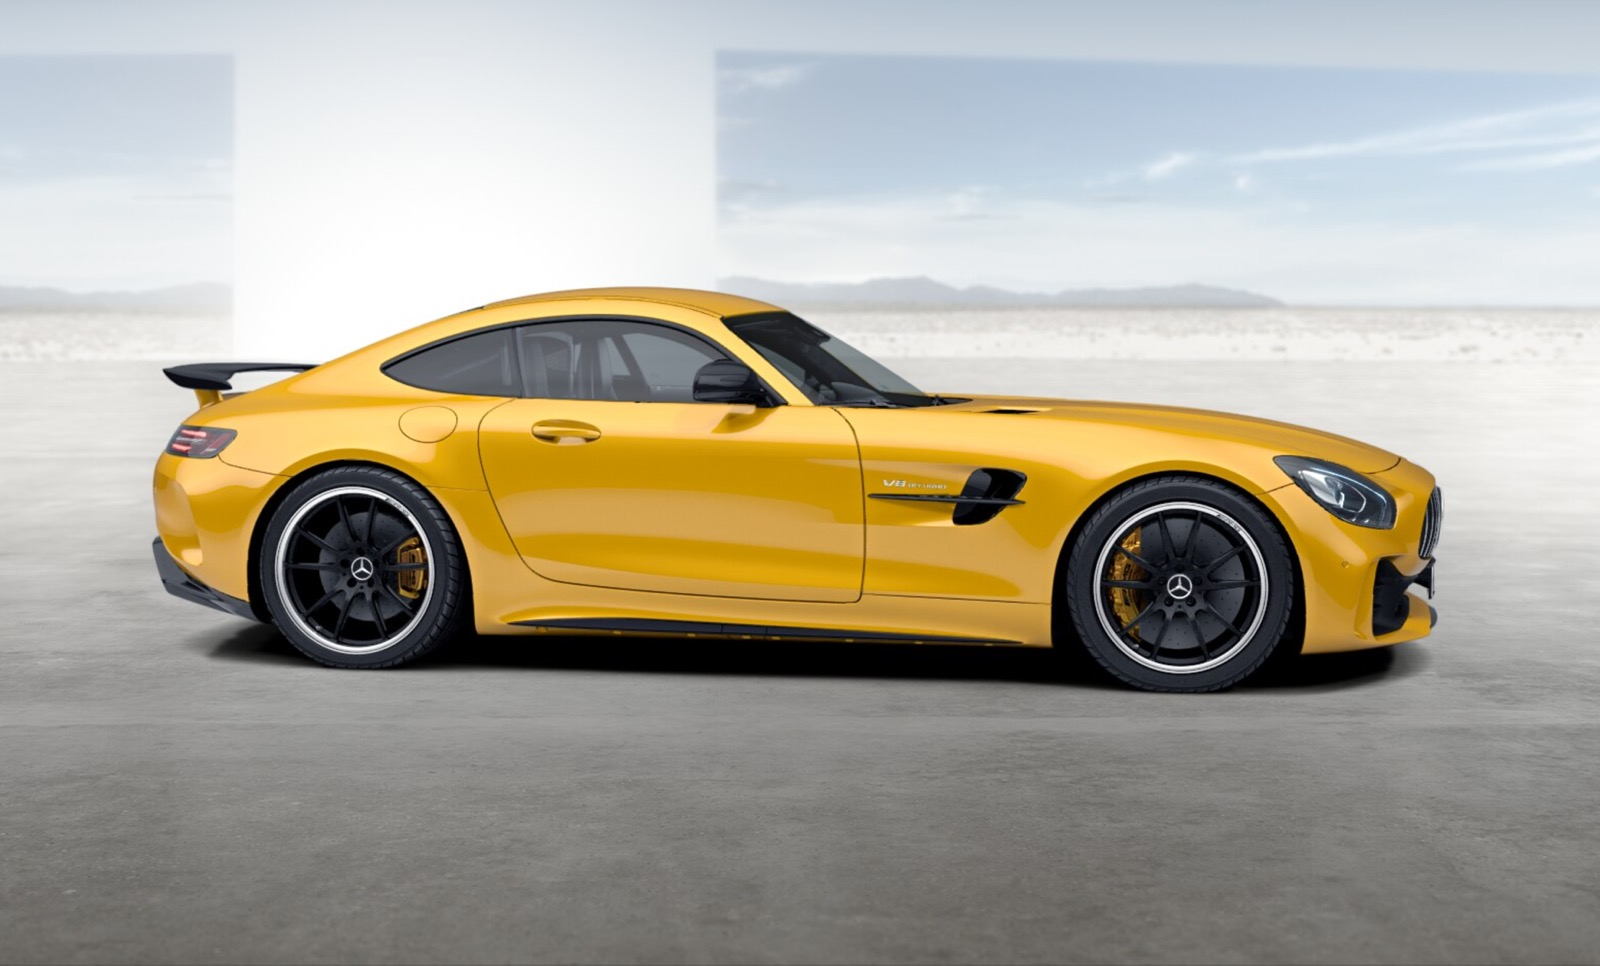 mercedes amg gt r pricing revealed starts at 139 000 pre tax gtspirit. Black Bedroom Furniture Sets. Home Design Ideas